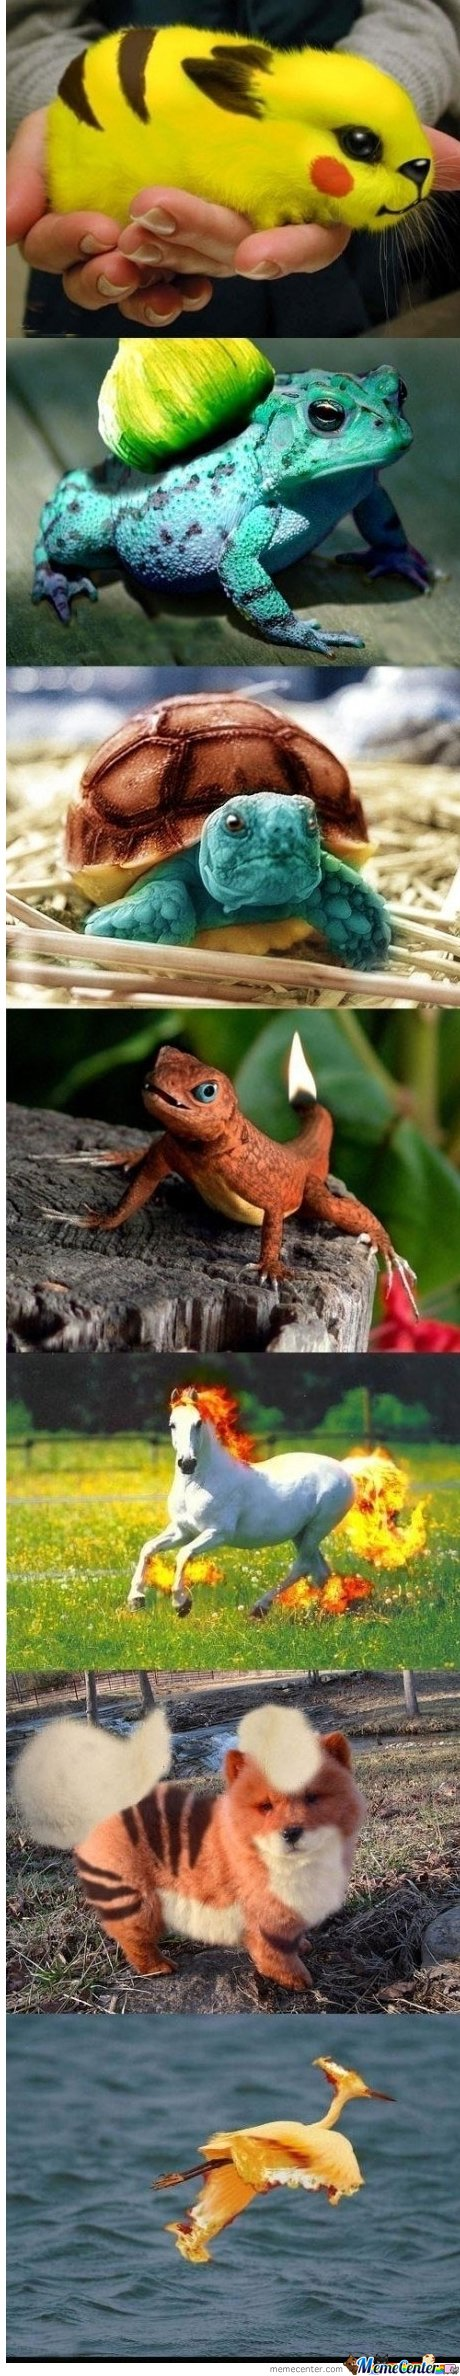 pokemon in real life! got to catch theme ALL